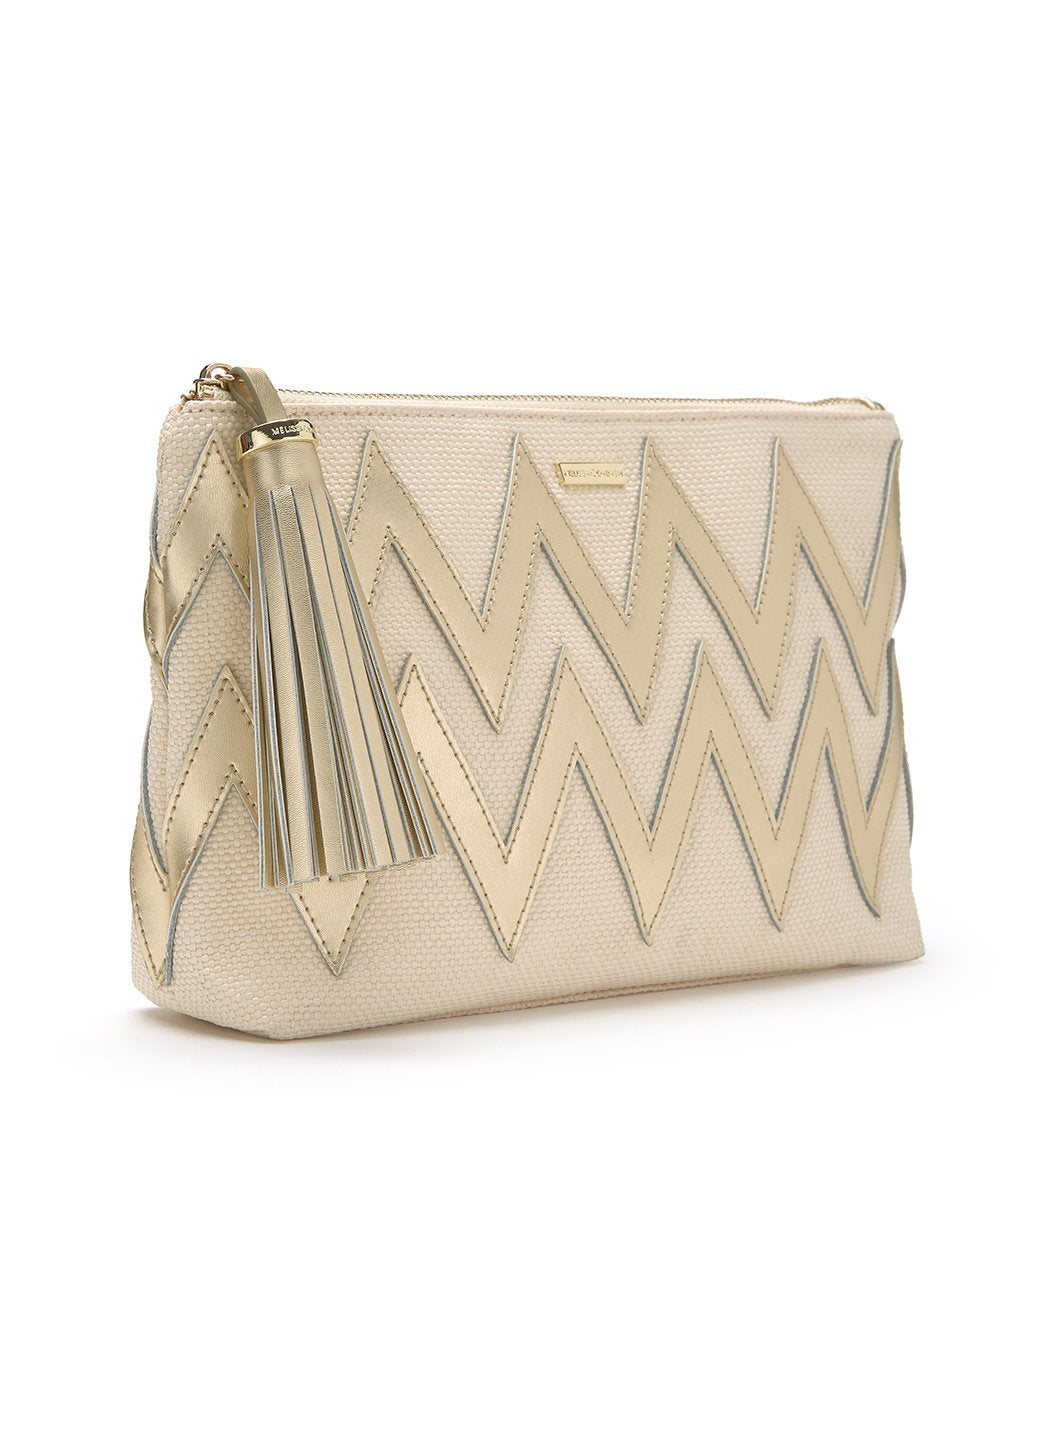 crete zigzag clutch bag natural gold 2019 2